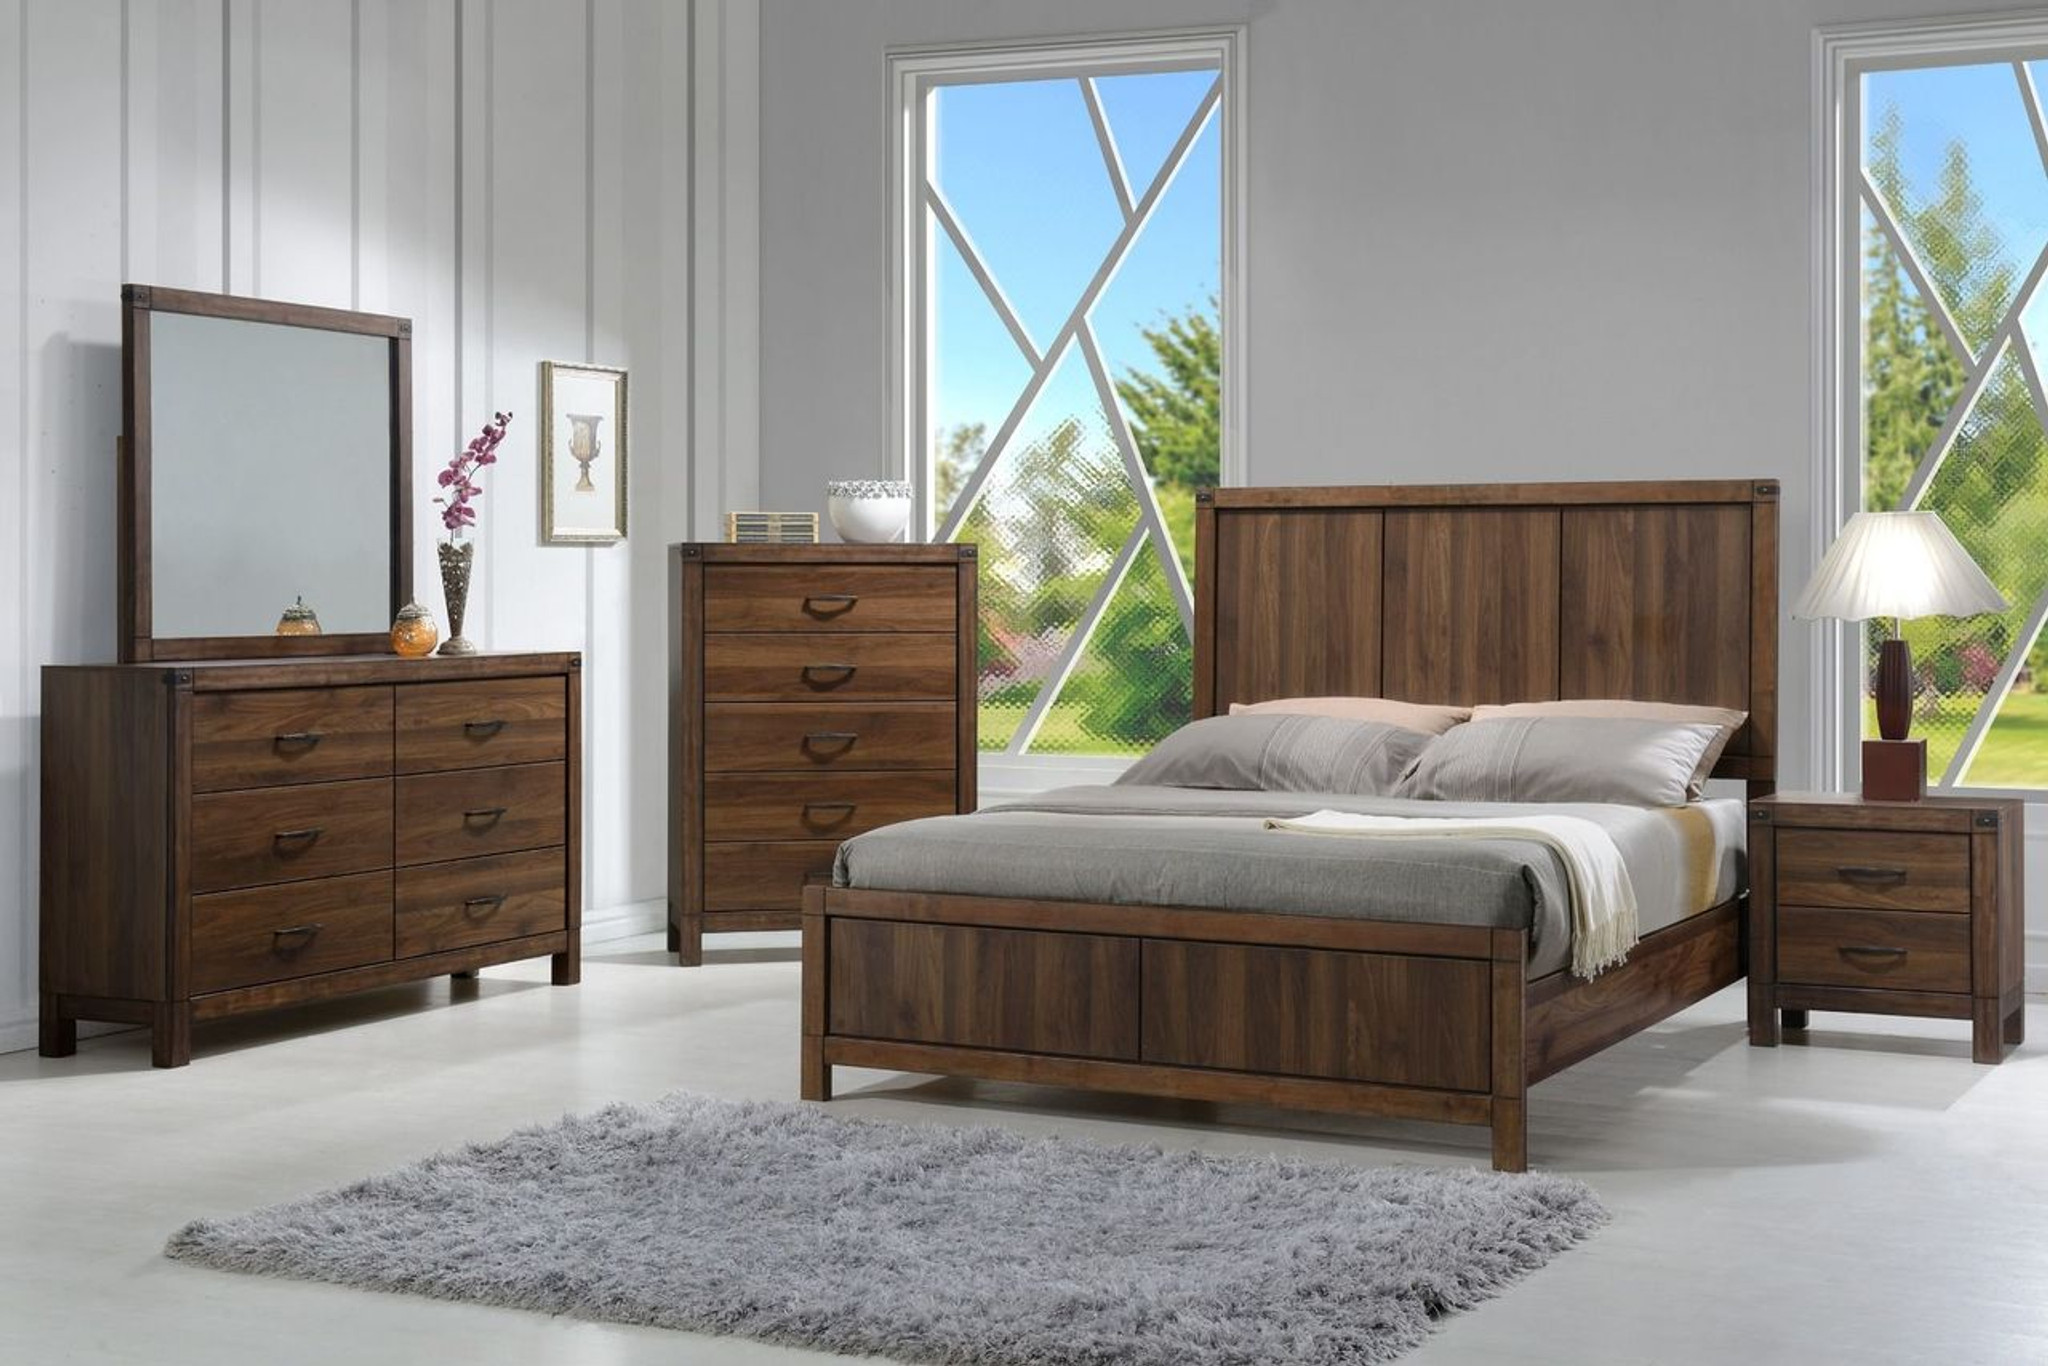 6 PCS BELMONT BEDROOM SET- WOOD HB